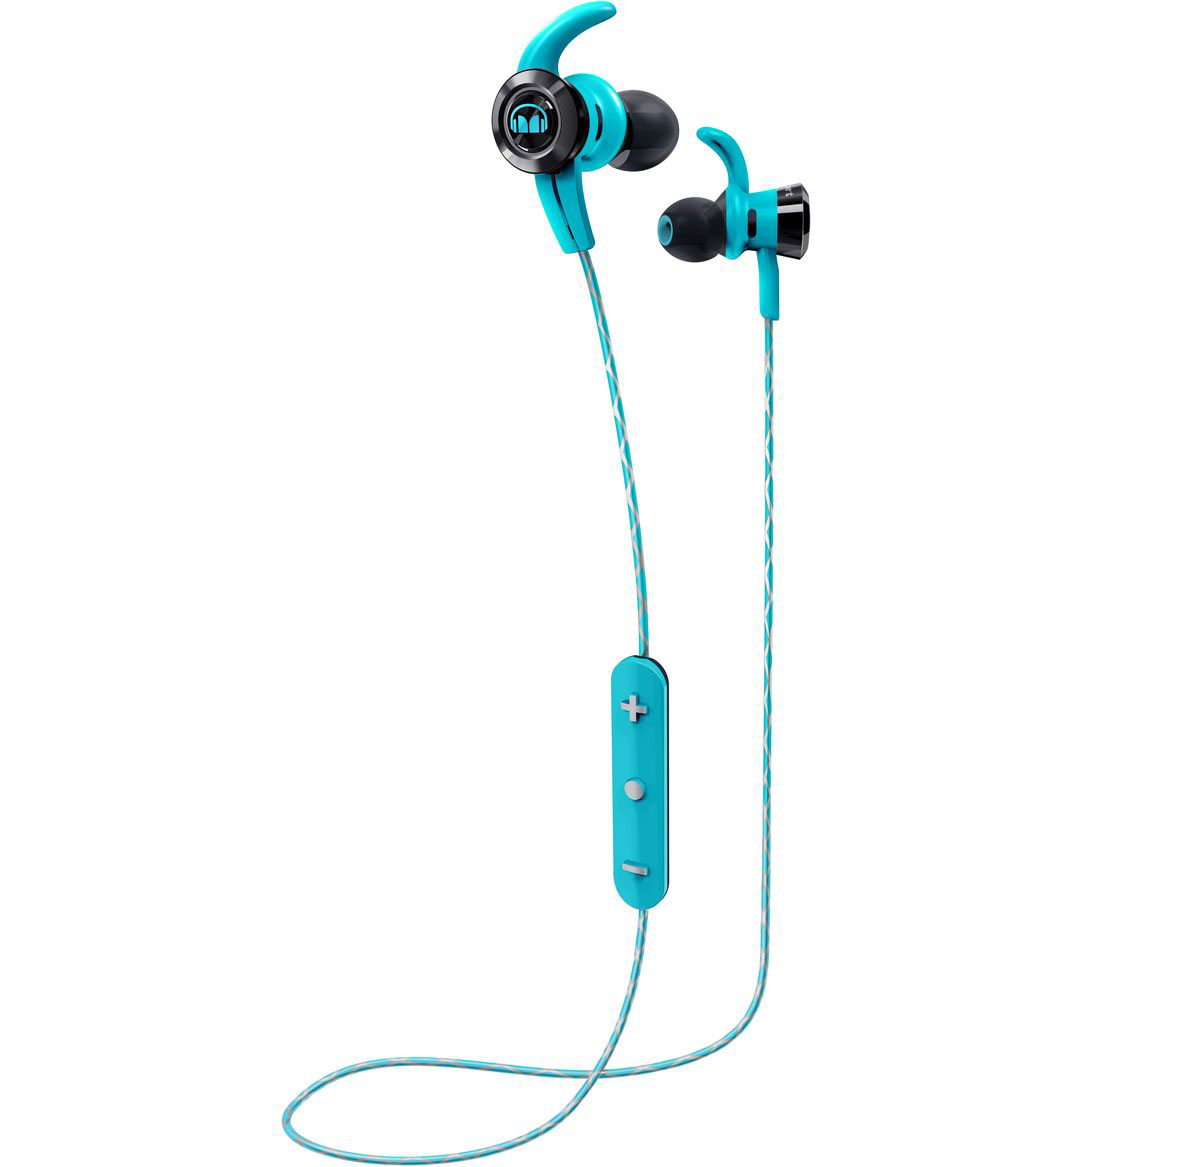 Monster iSport Victory In-Ear Wireless, Blue наушники аудио наушники monster наушники с микрофоном monster clarity hd white in ear headphones